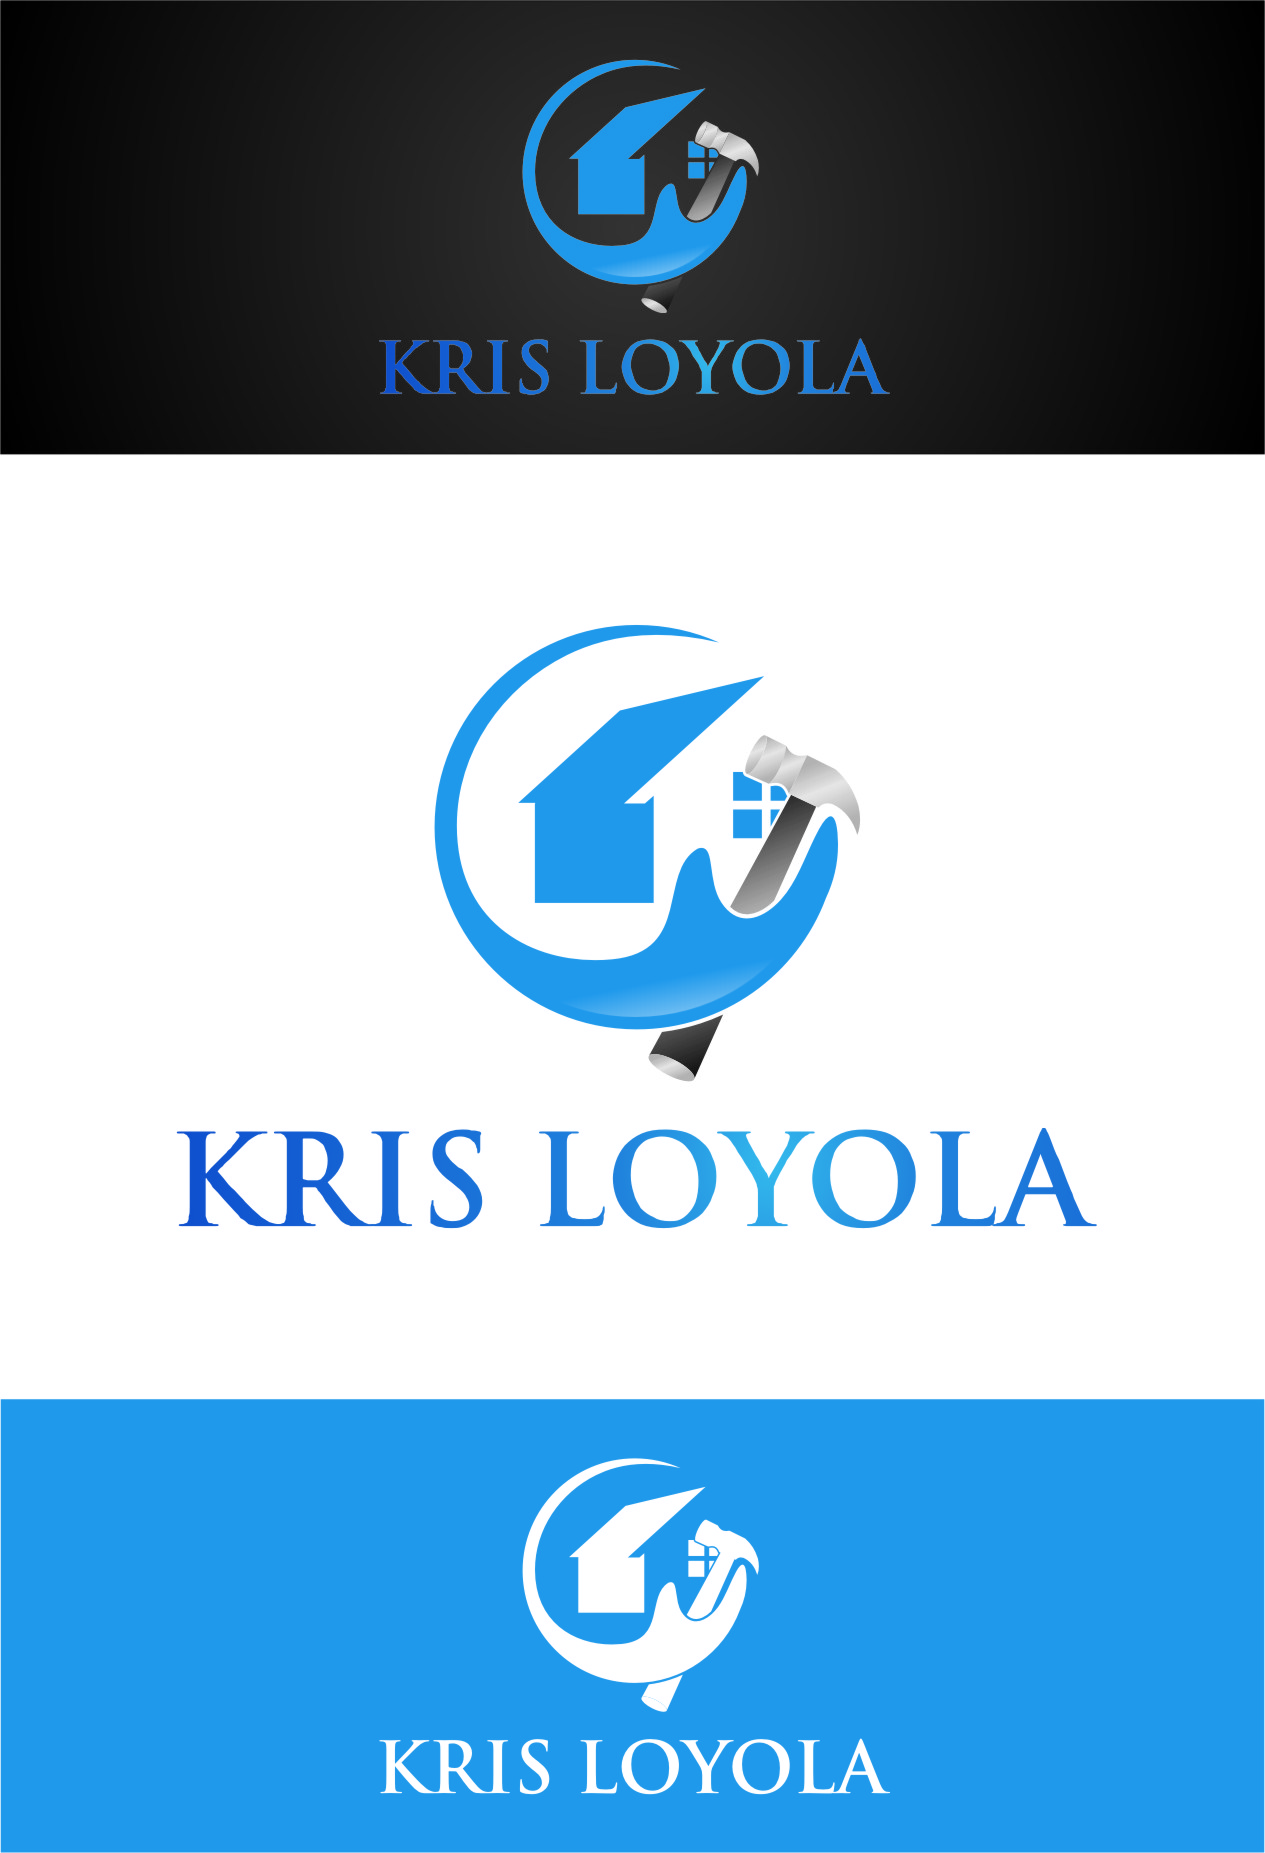 Logo Design by Ngepet_art - Entry No. 4 in the Logo Design Contest Kris Loyola Logo Design.